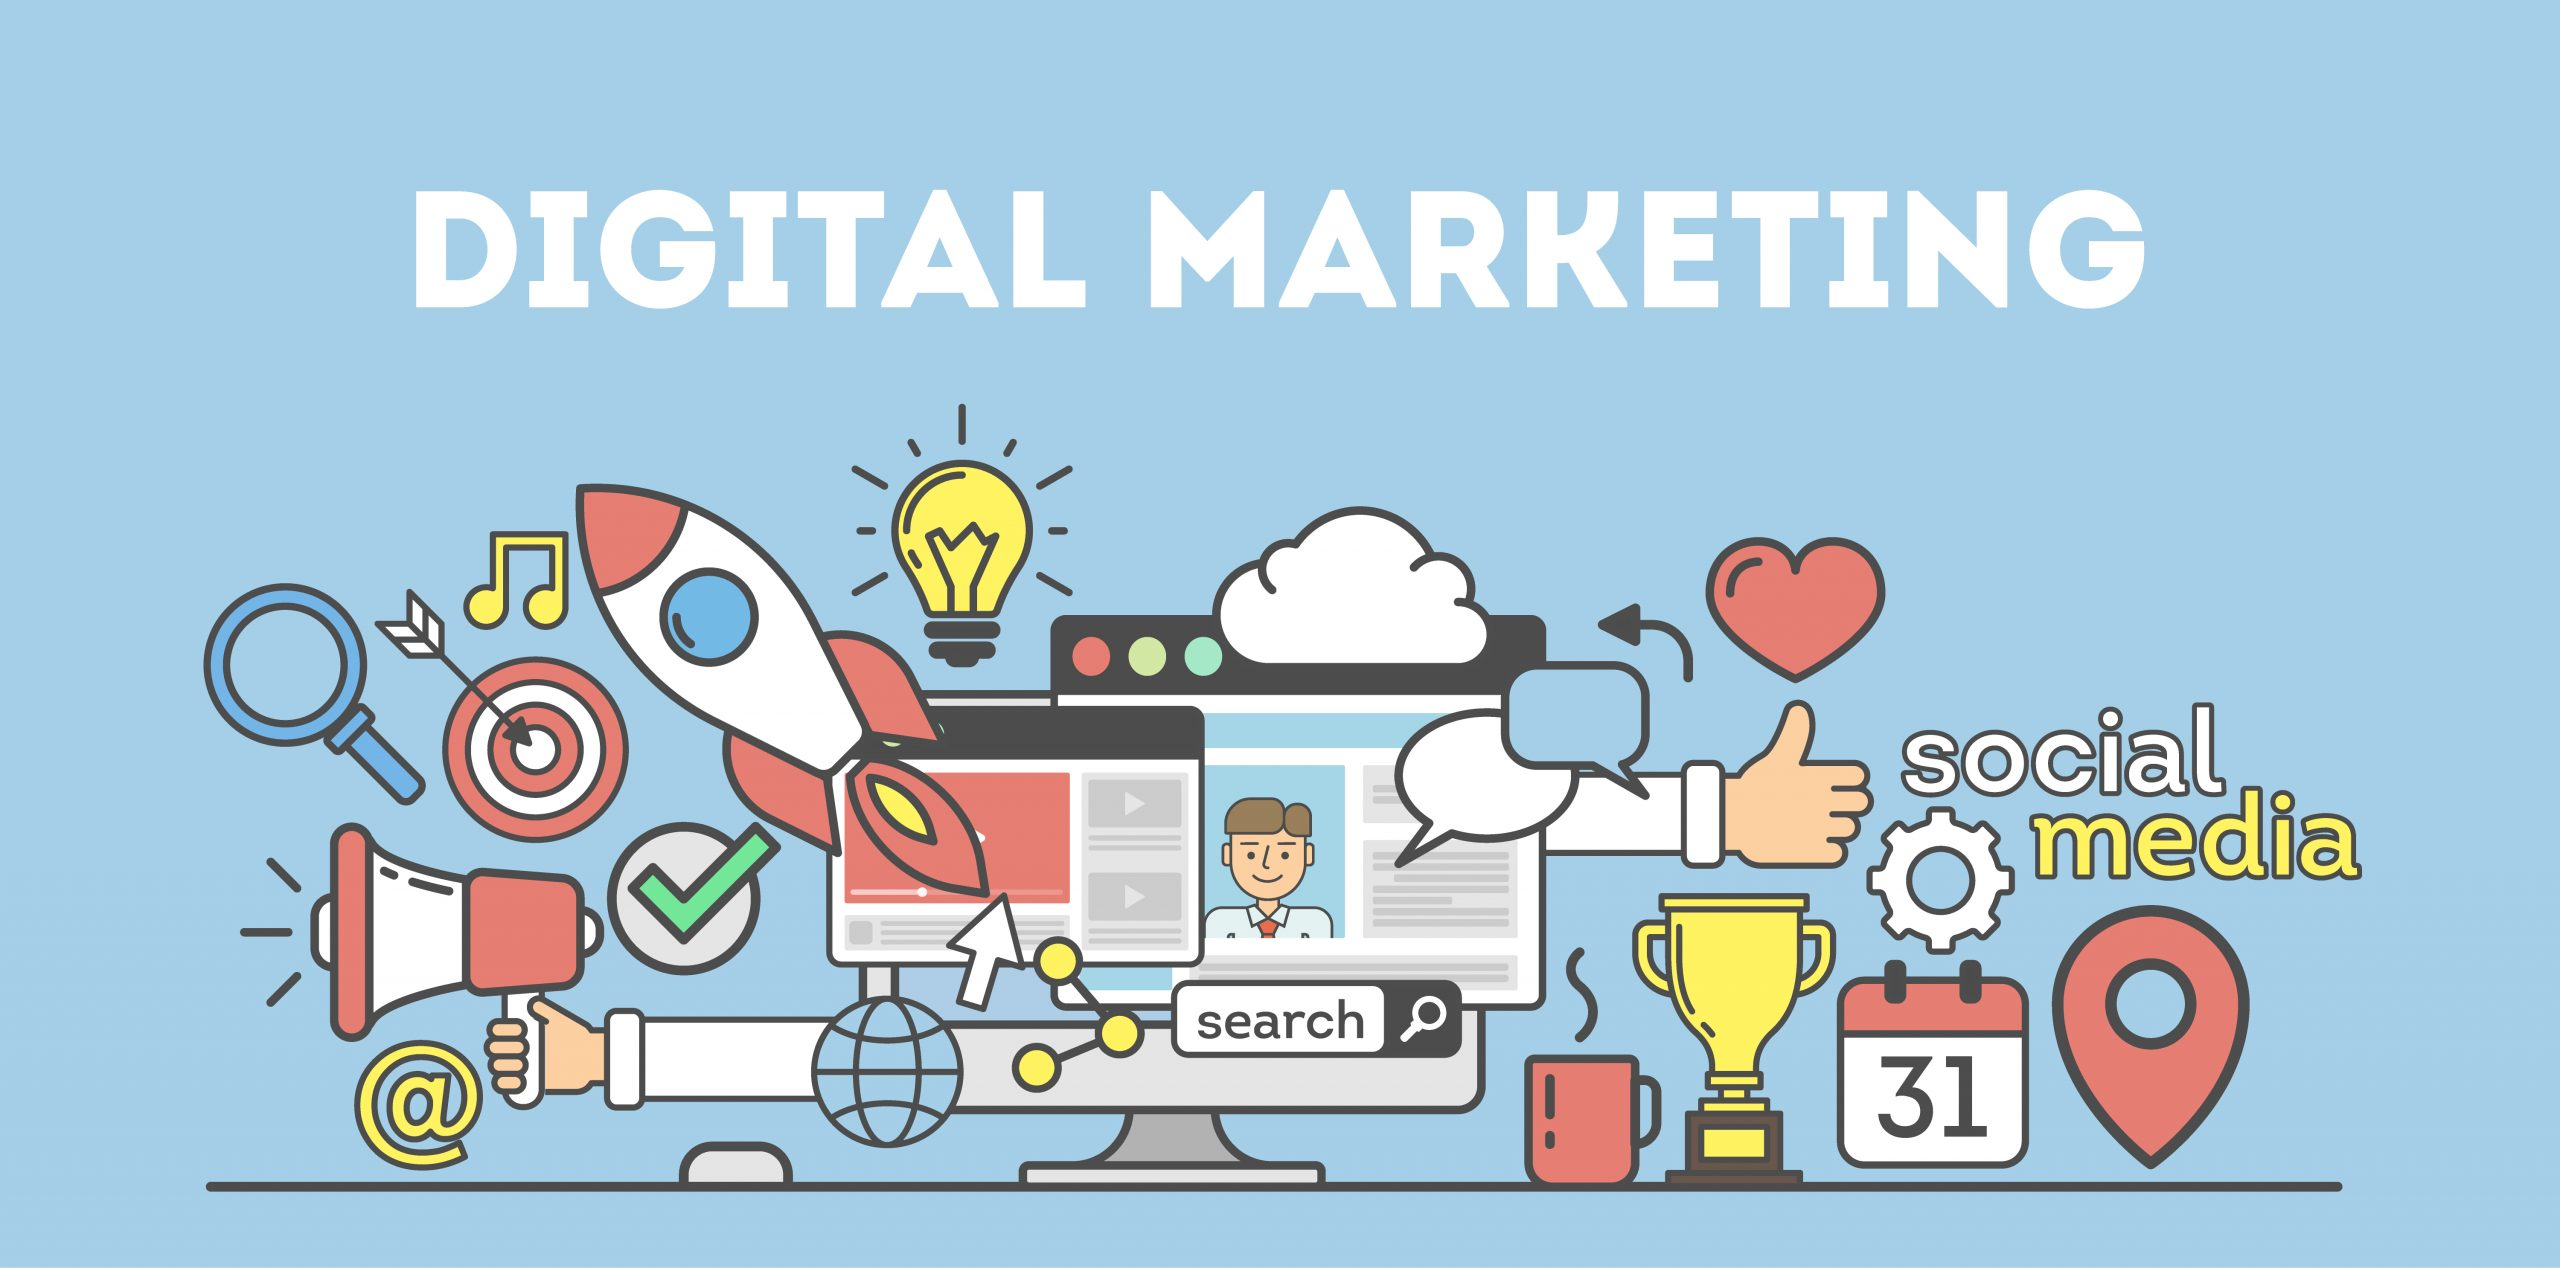 5 conseils pour réussir son Marketing digital en Chine 1